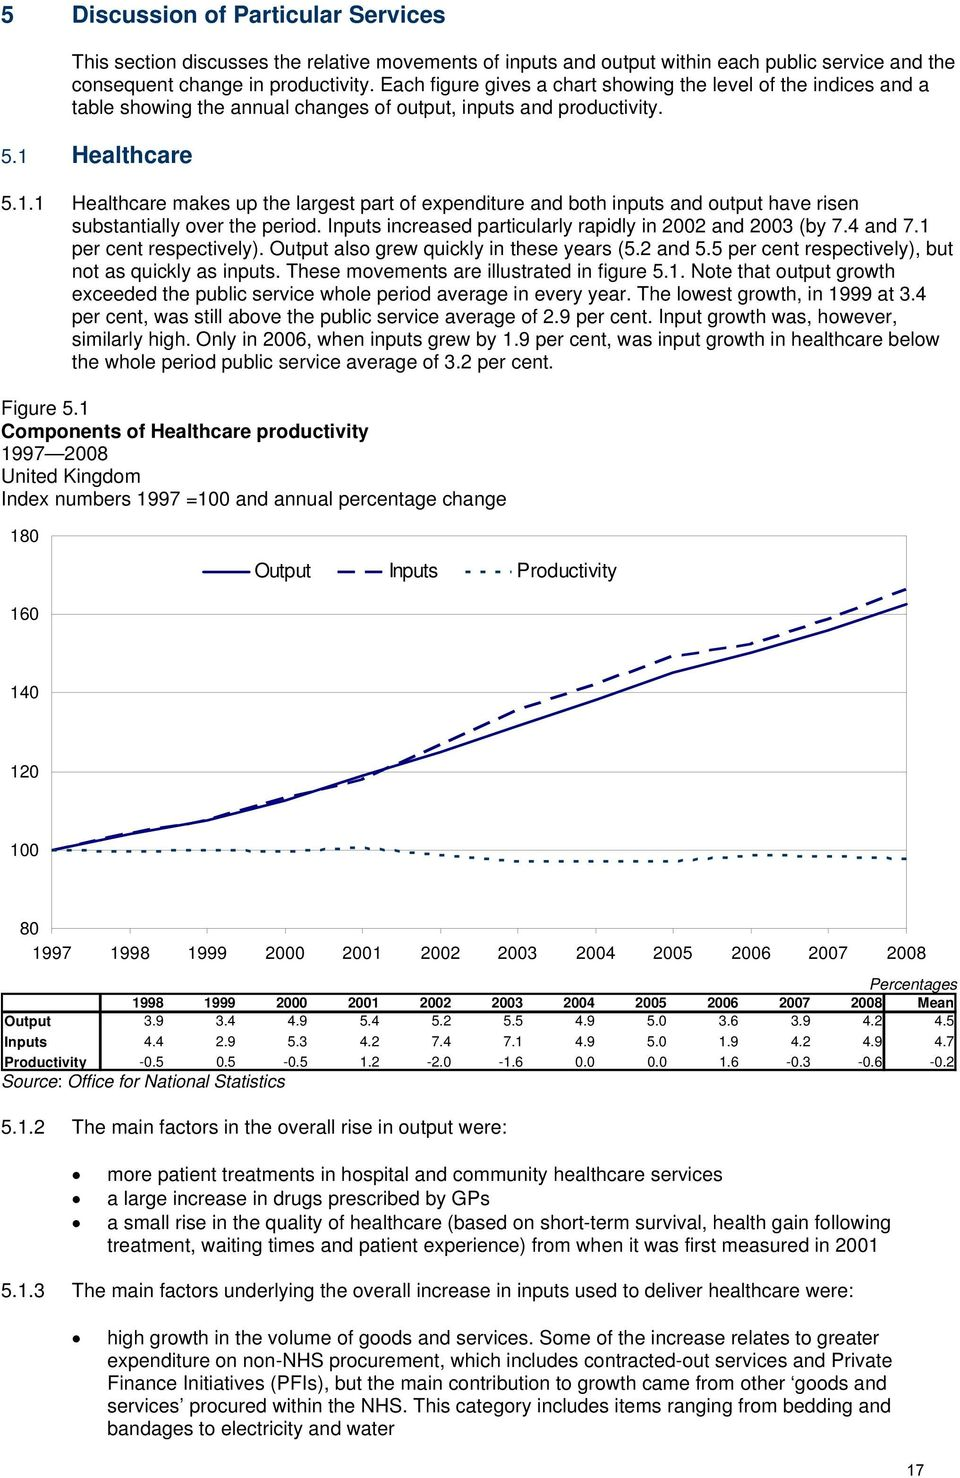 Healthcare 5.1.1 Healthcare makes up the largest part of expenditure and both inputs and output have risen substantially over the period. Inputs increased particularly rapidly in 2002 and 2003 (by 7.